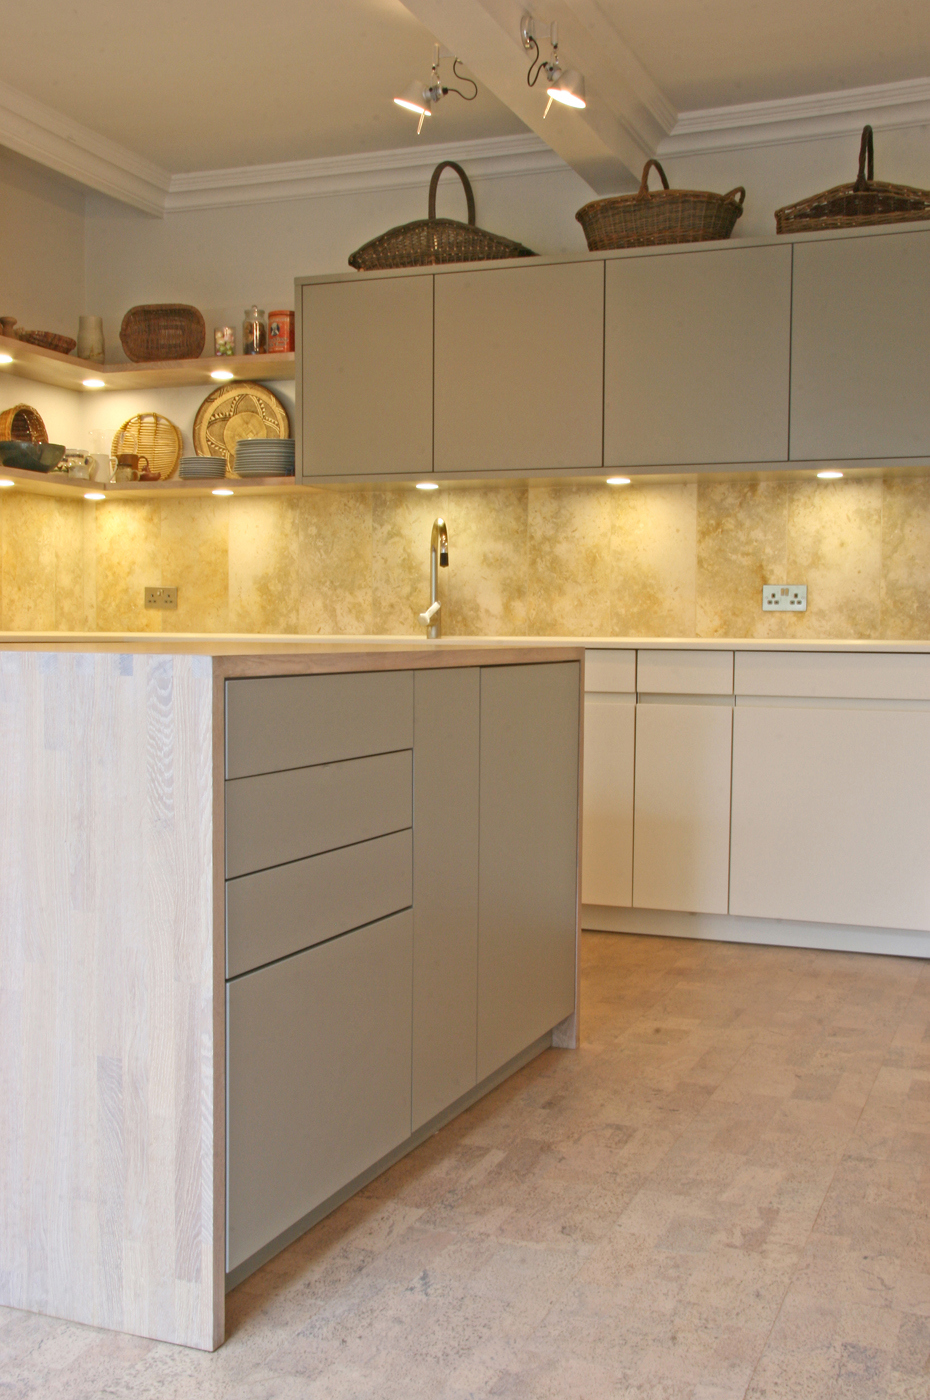 leicht_kitchen_extension_rogue_designs_architecture_oxford_2